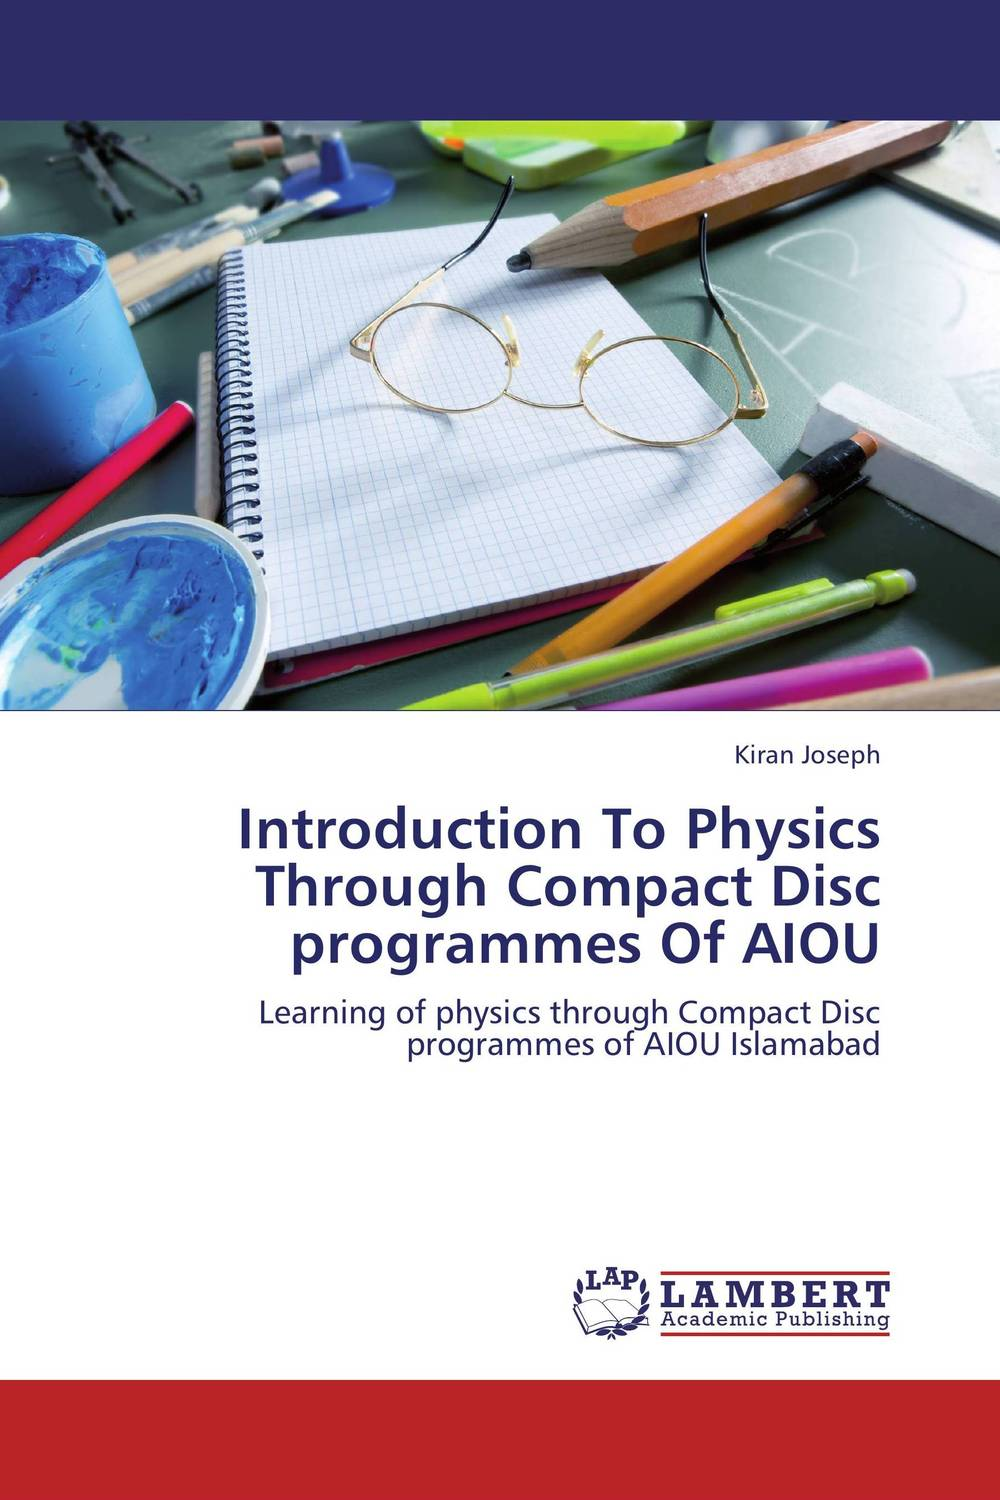 Introduction To Physics Through Compact Disc programmes Of AIOU introduction to special education